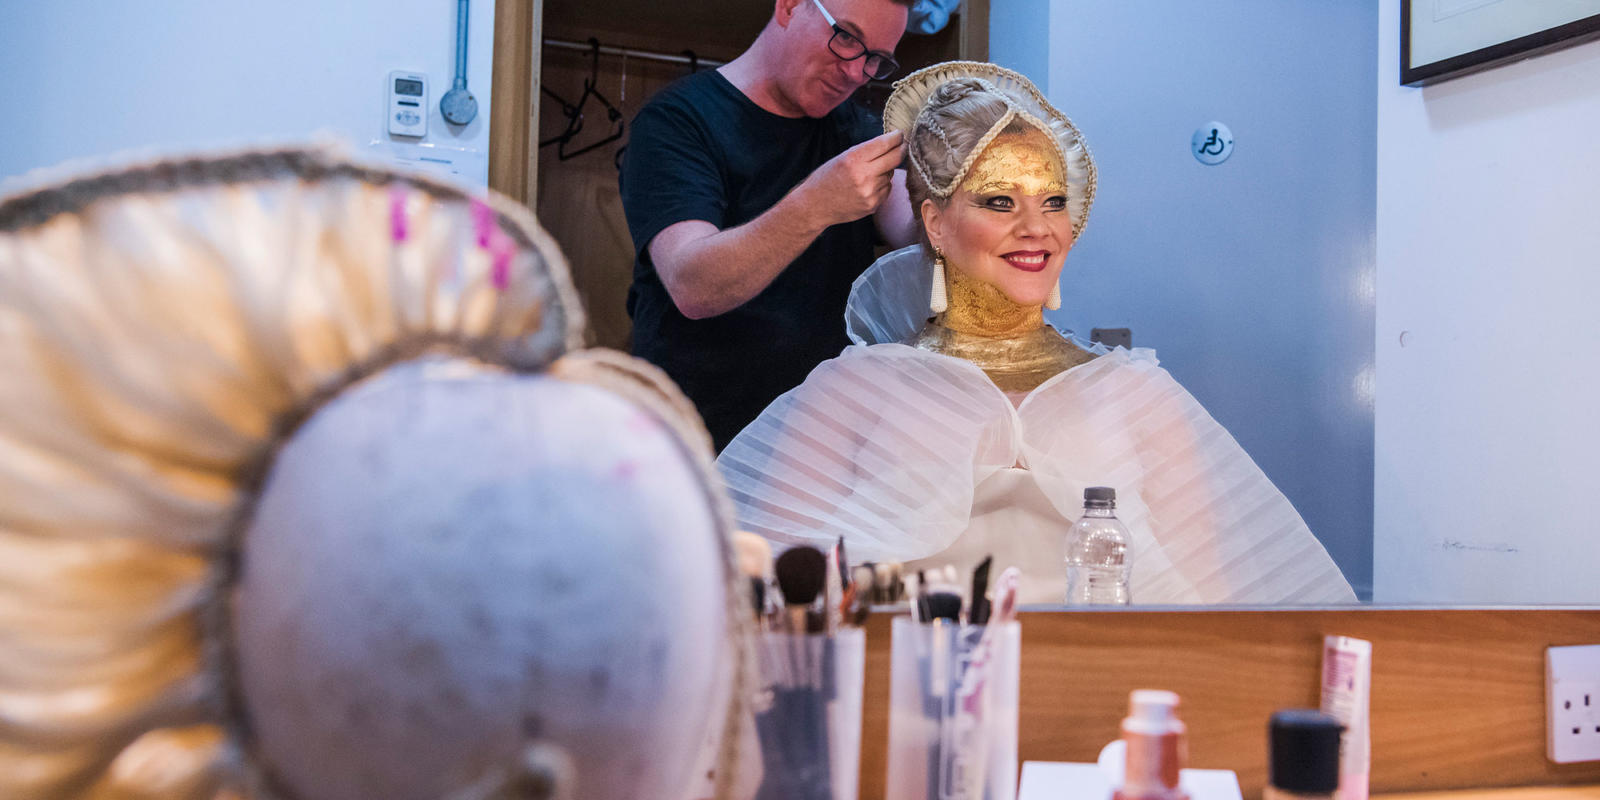 Michelle DeYoung getting ready backstage to sing the role of Amneris (c) Tristram Kenton